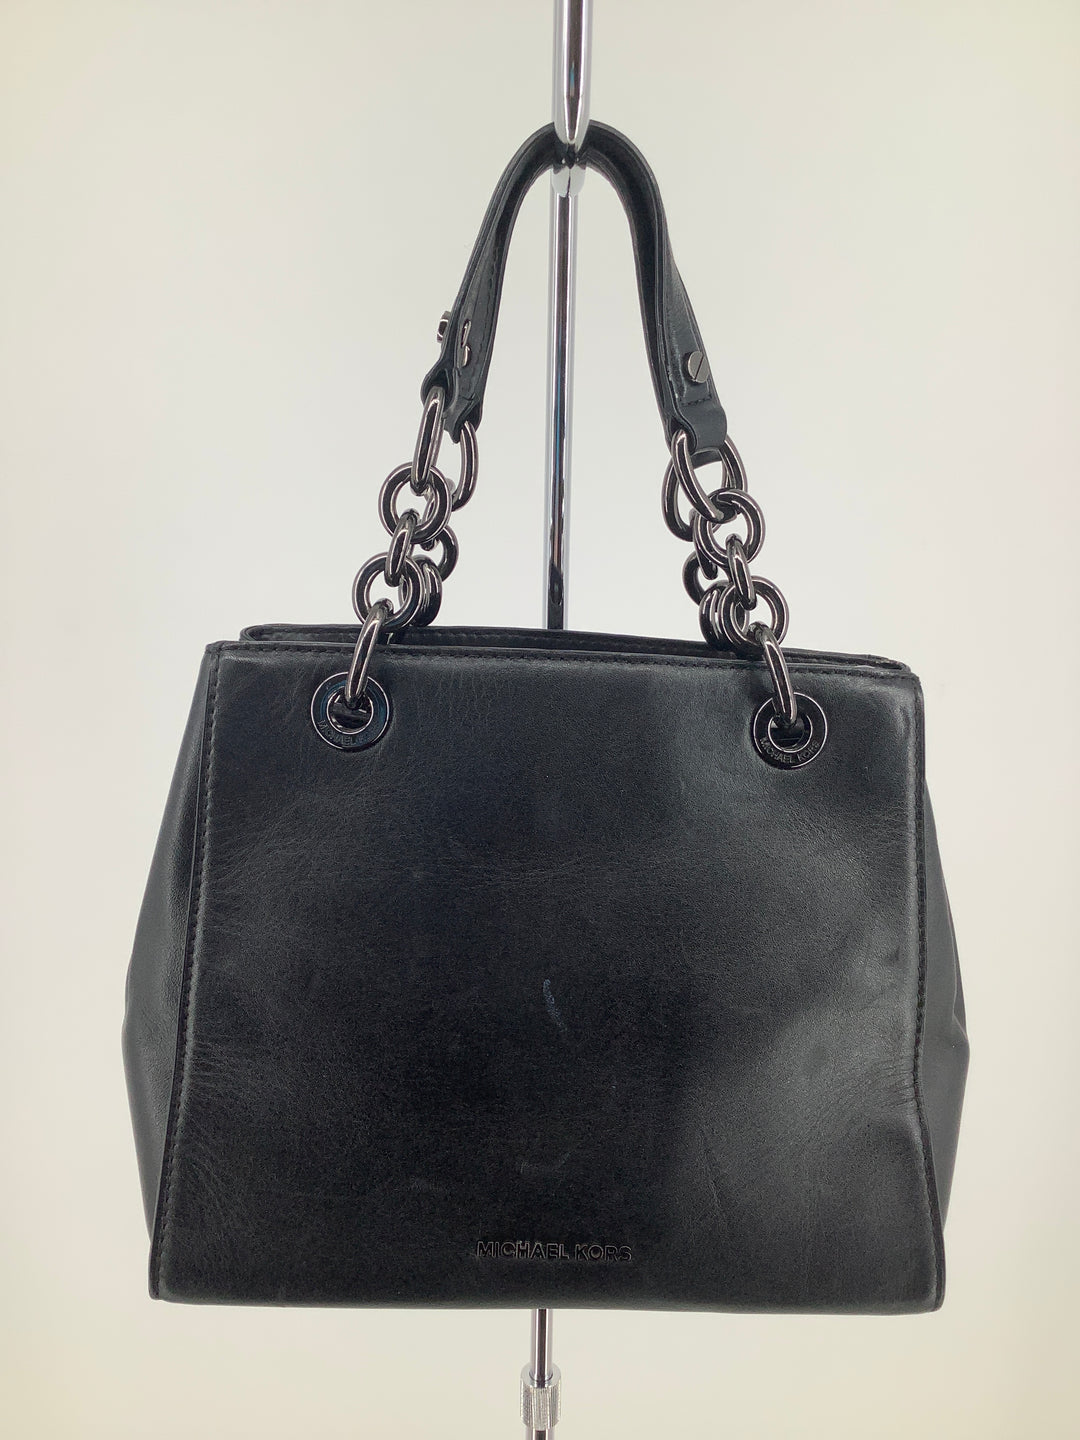 Photo #1 - brand: michael kors , style: handbag designer , color: black , size: small , sku: 105-2768-27455, missing long strap